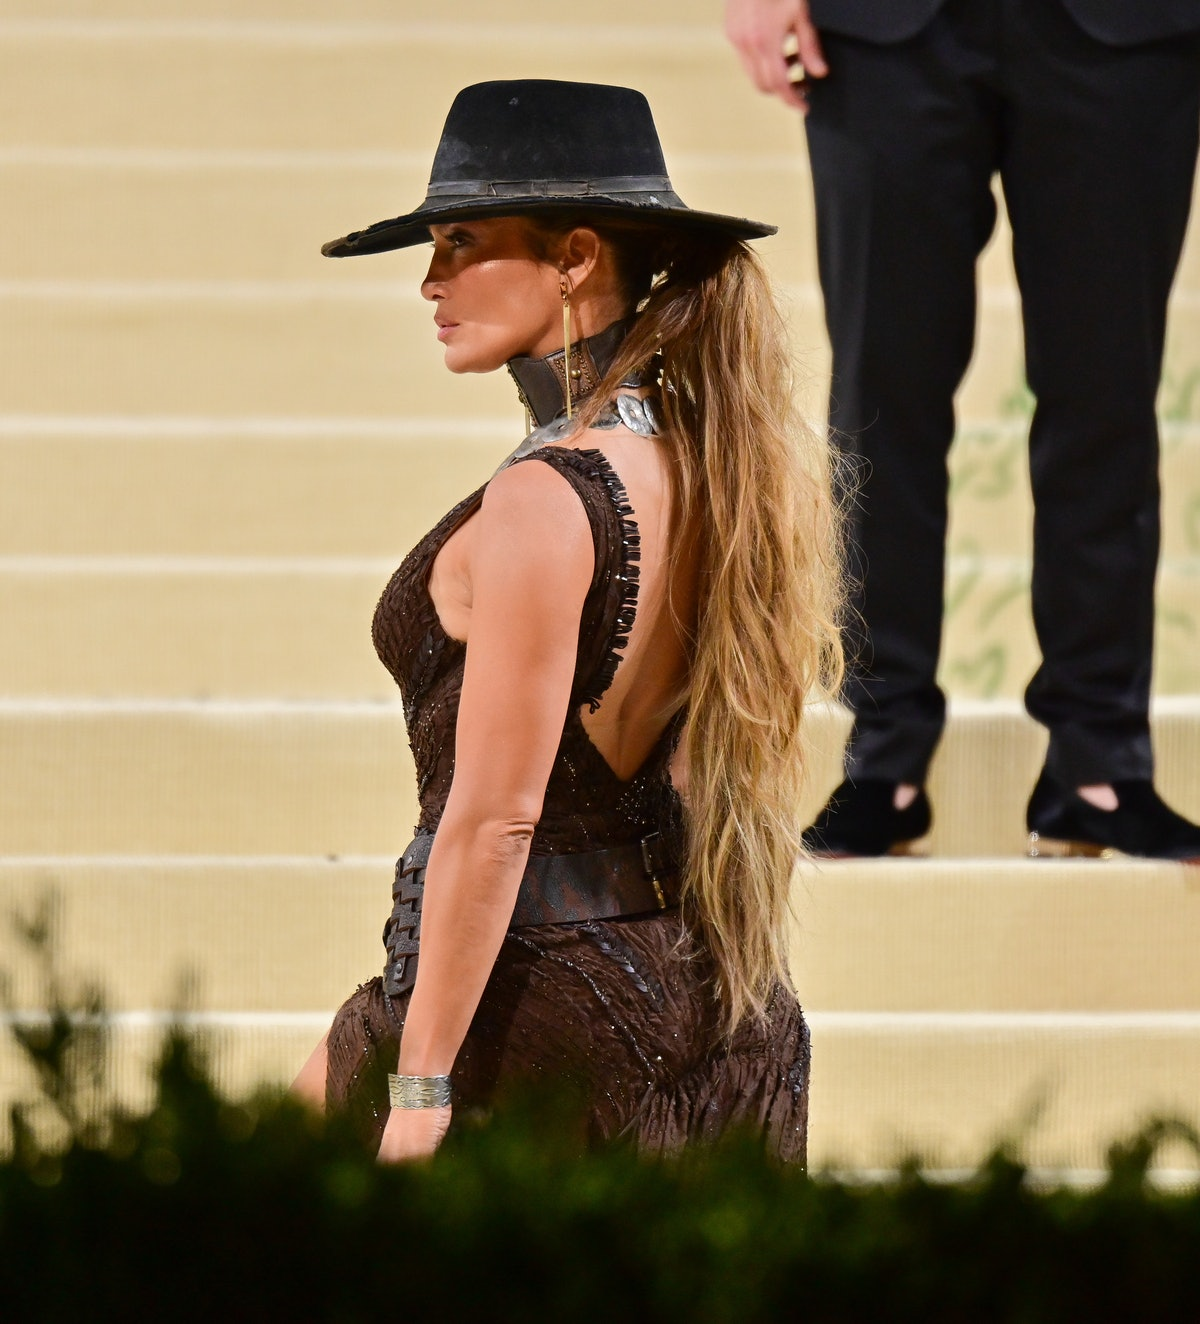 Jennifer Lopez's Met Gala 2021 hair was meant to mimic a horse's tail, fitting in with her Wild West...